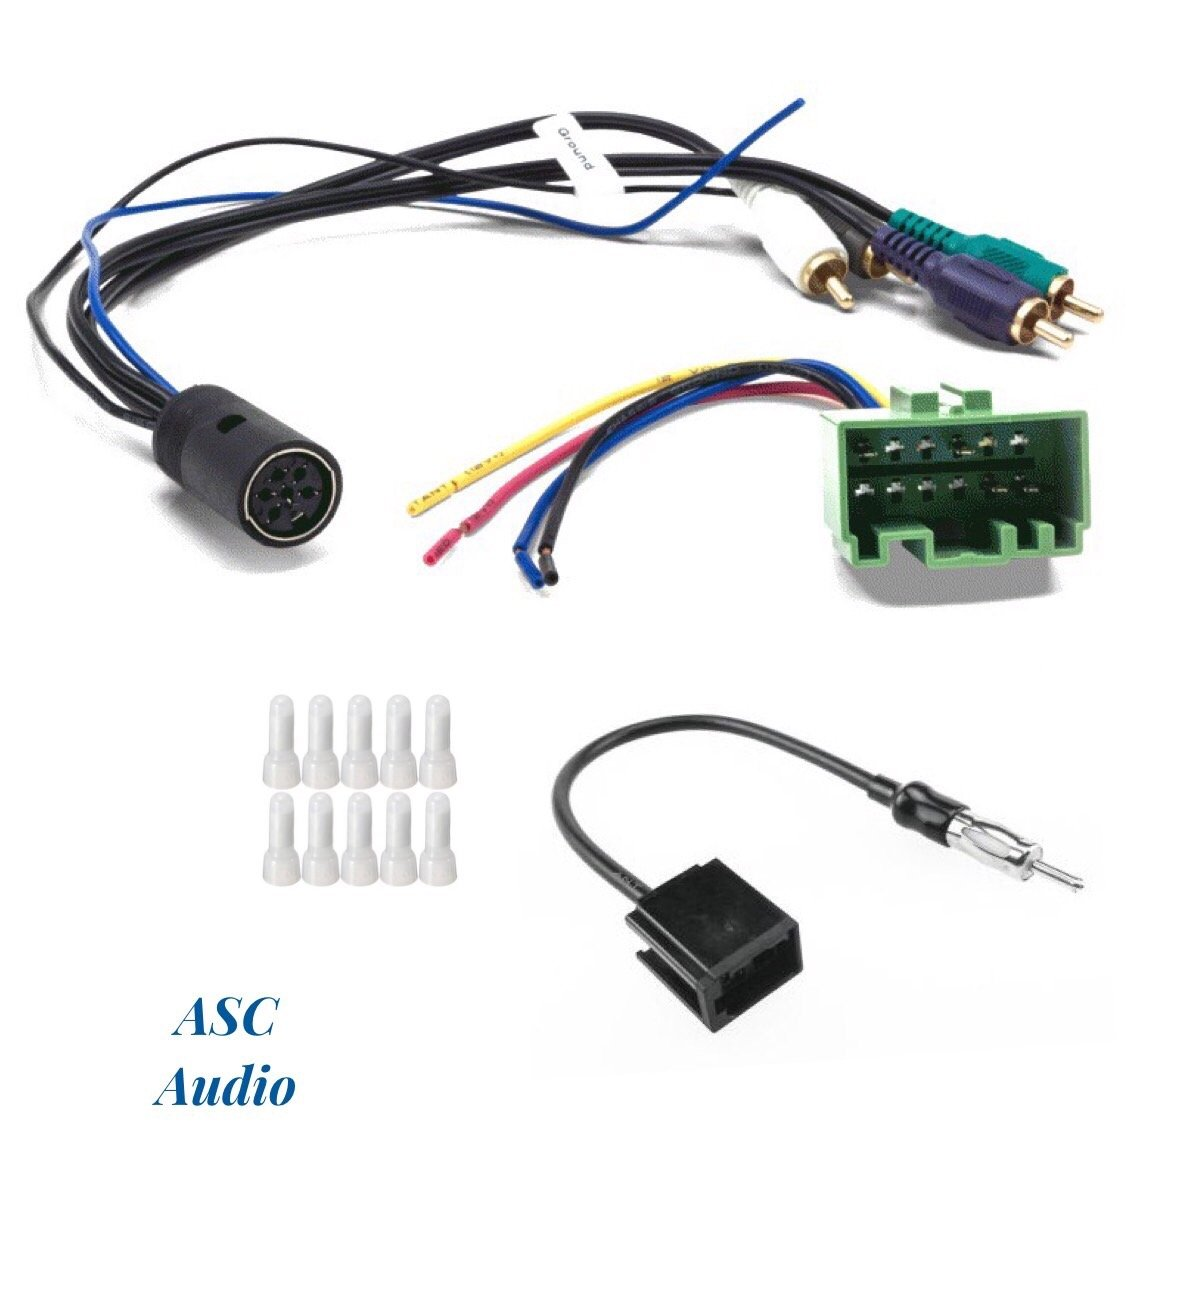 Volvo S60 Radio Top Deals Lowest Price Car Stereo Wiring Harness Plugs To Factory Asc Audio Wire And Antenna Adapter Install An Aftermarket For